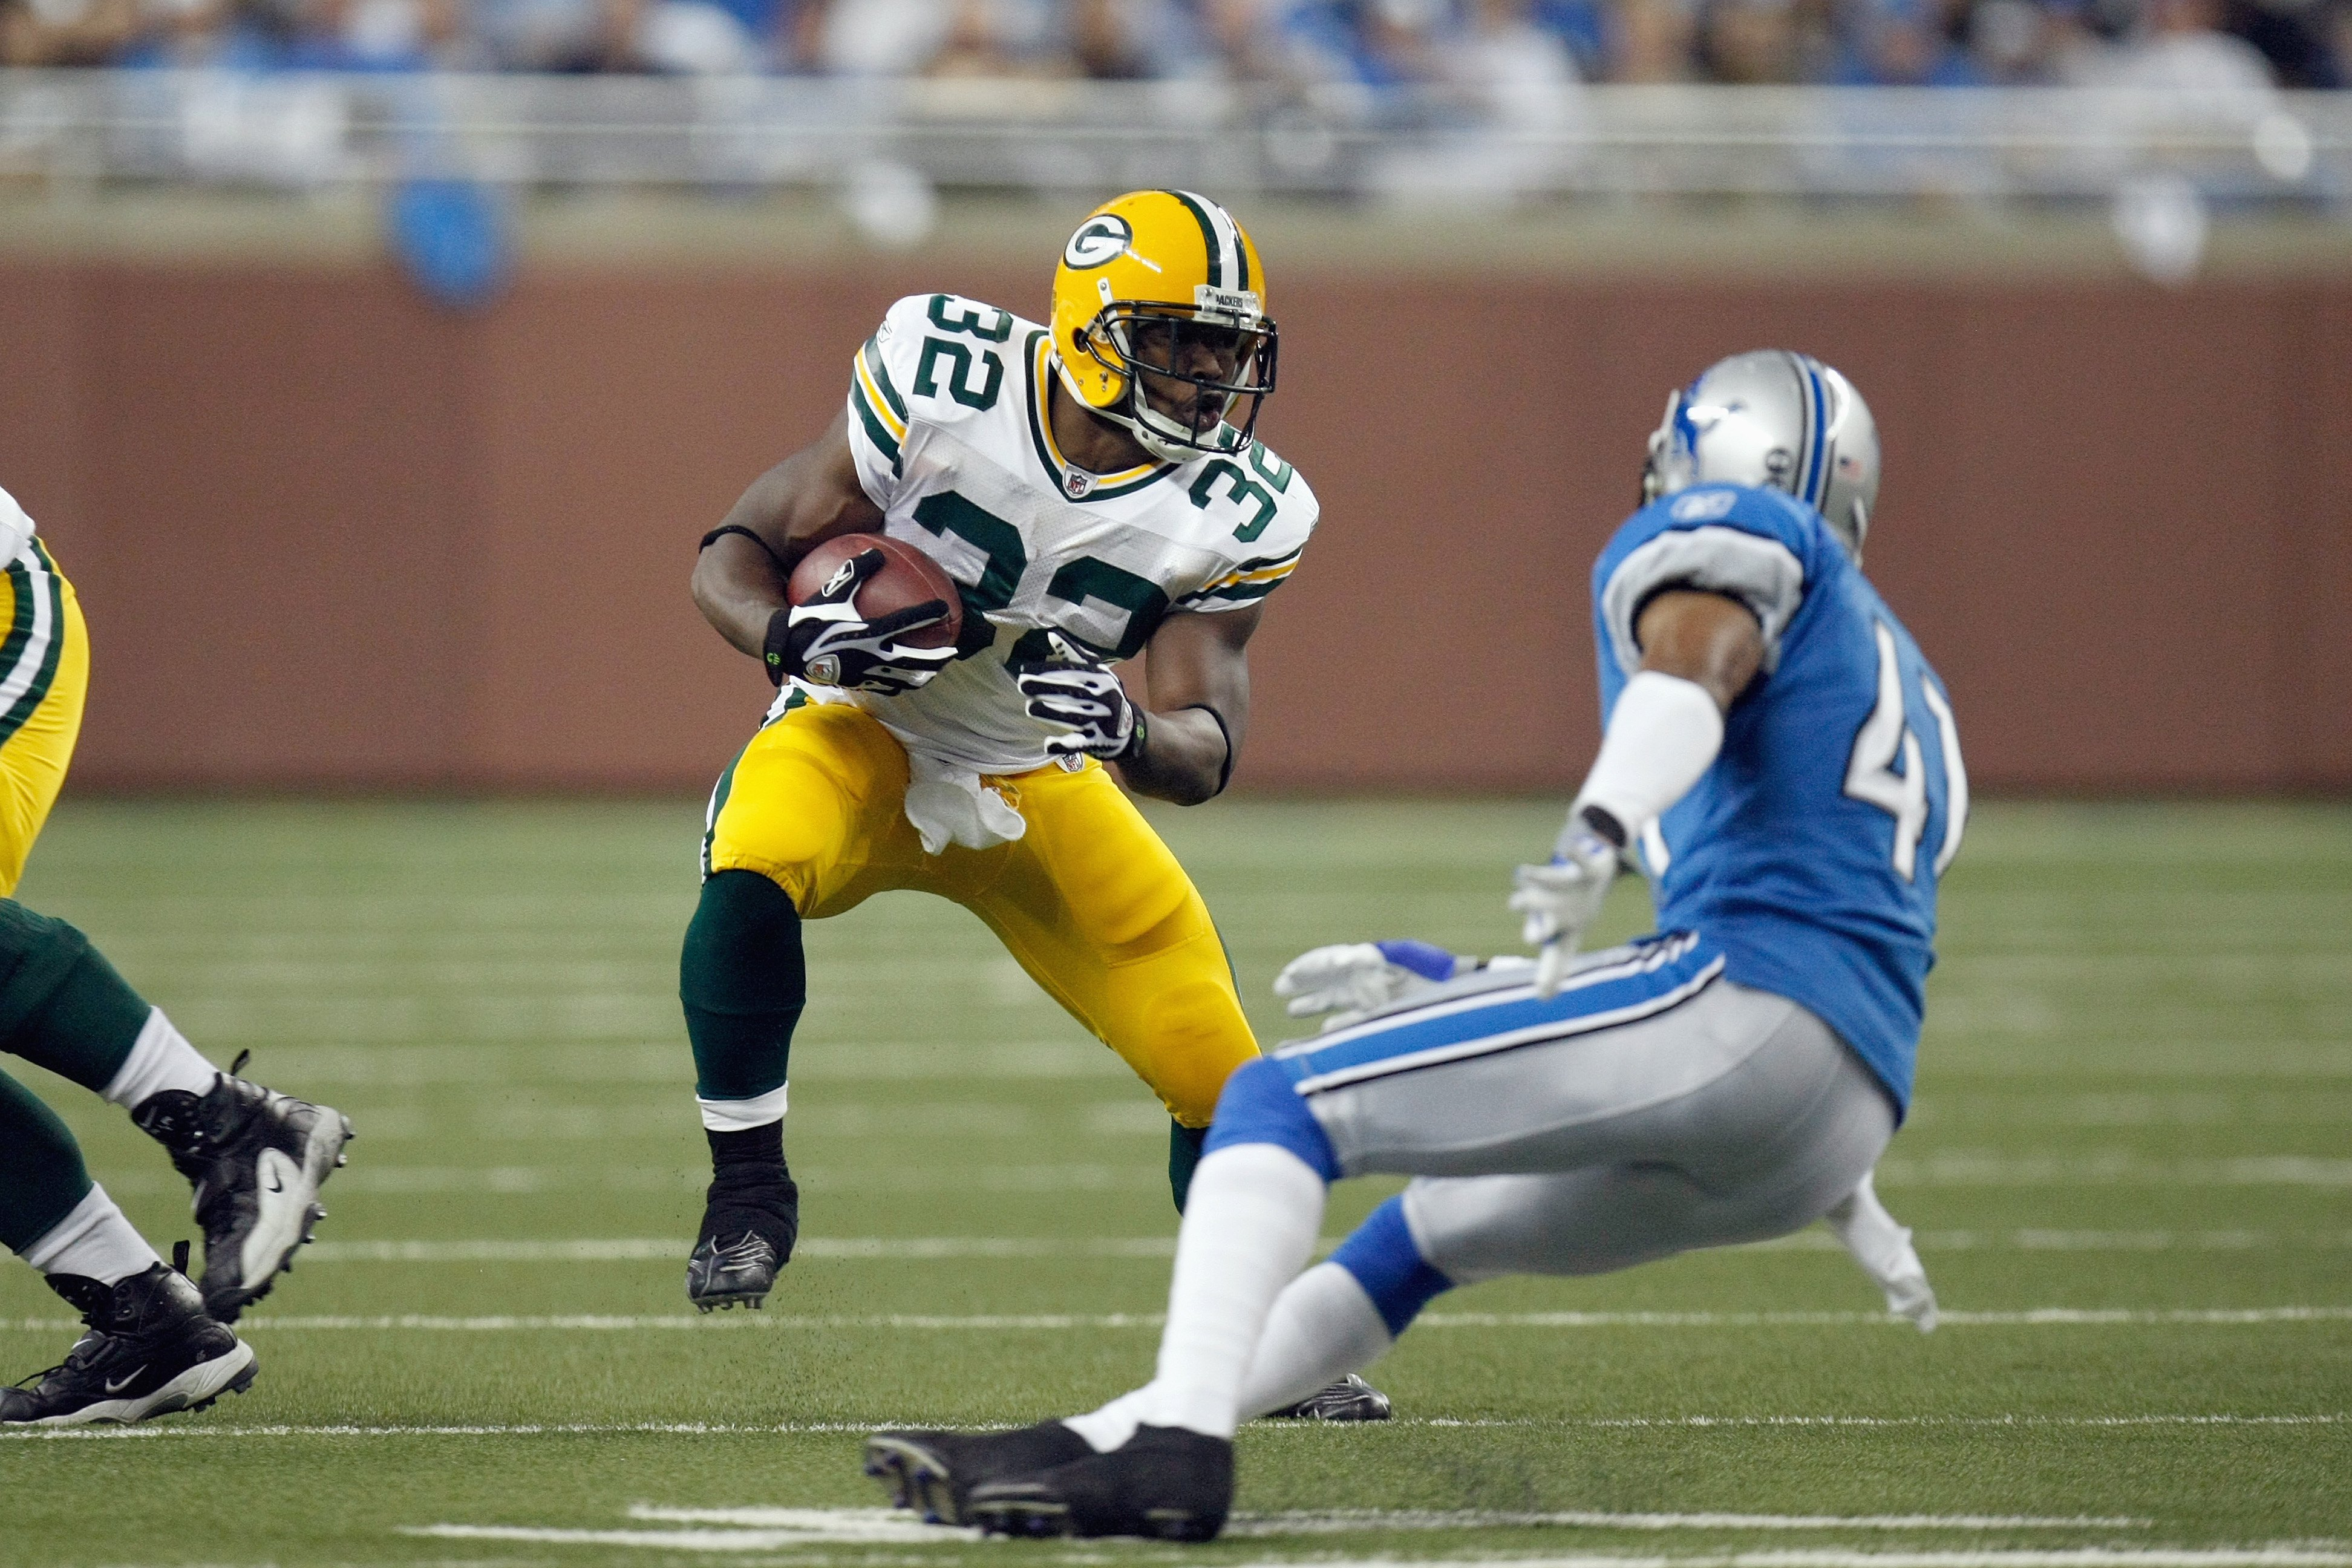 DETROIT , MI - NOVEMBER 26:  Brandon Jackson #32 of the Green Bay Packers carries the ball against the Detroit Lions on November 26, 2009 at Ford Field in Detroit, Michigan. Green Bay won the game 34-12. (Photo by Gregory Shamus/Getty Images)